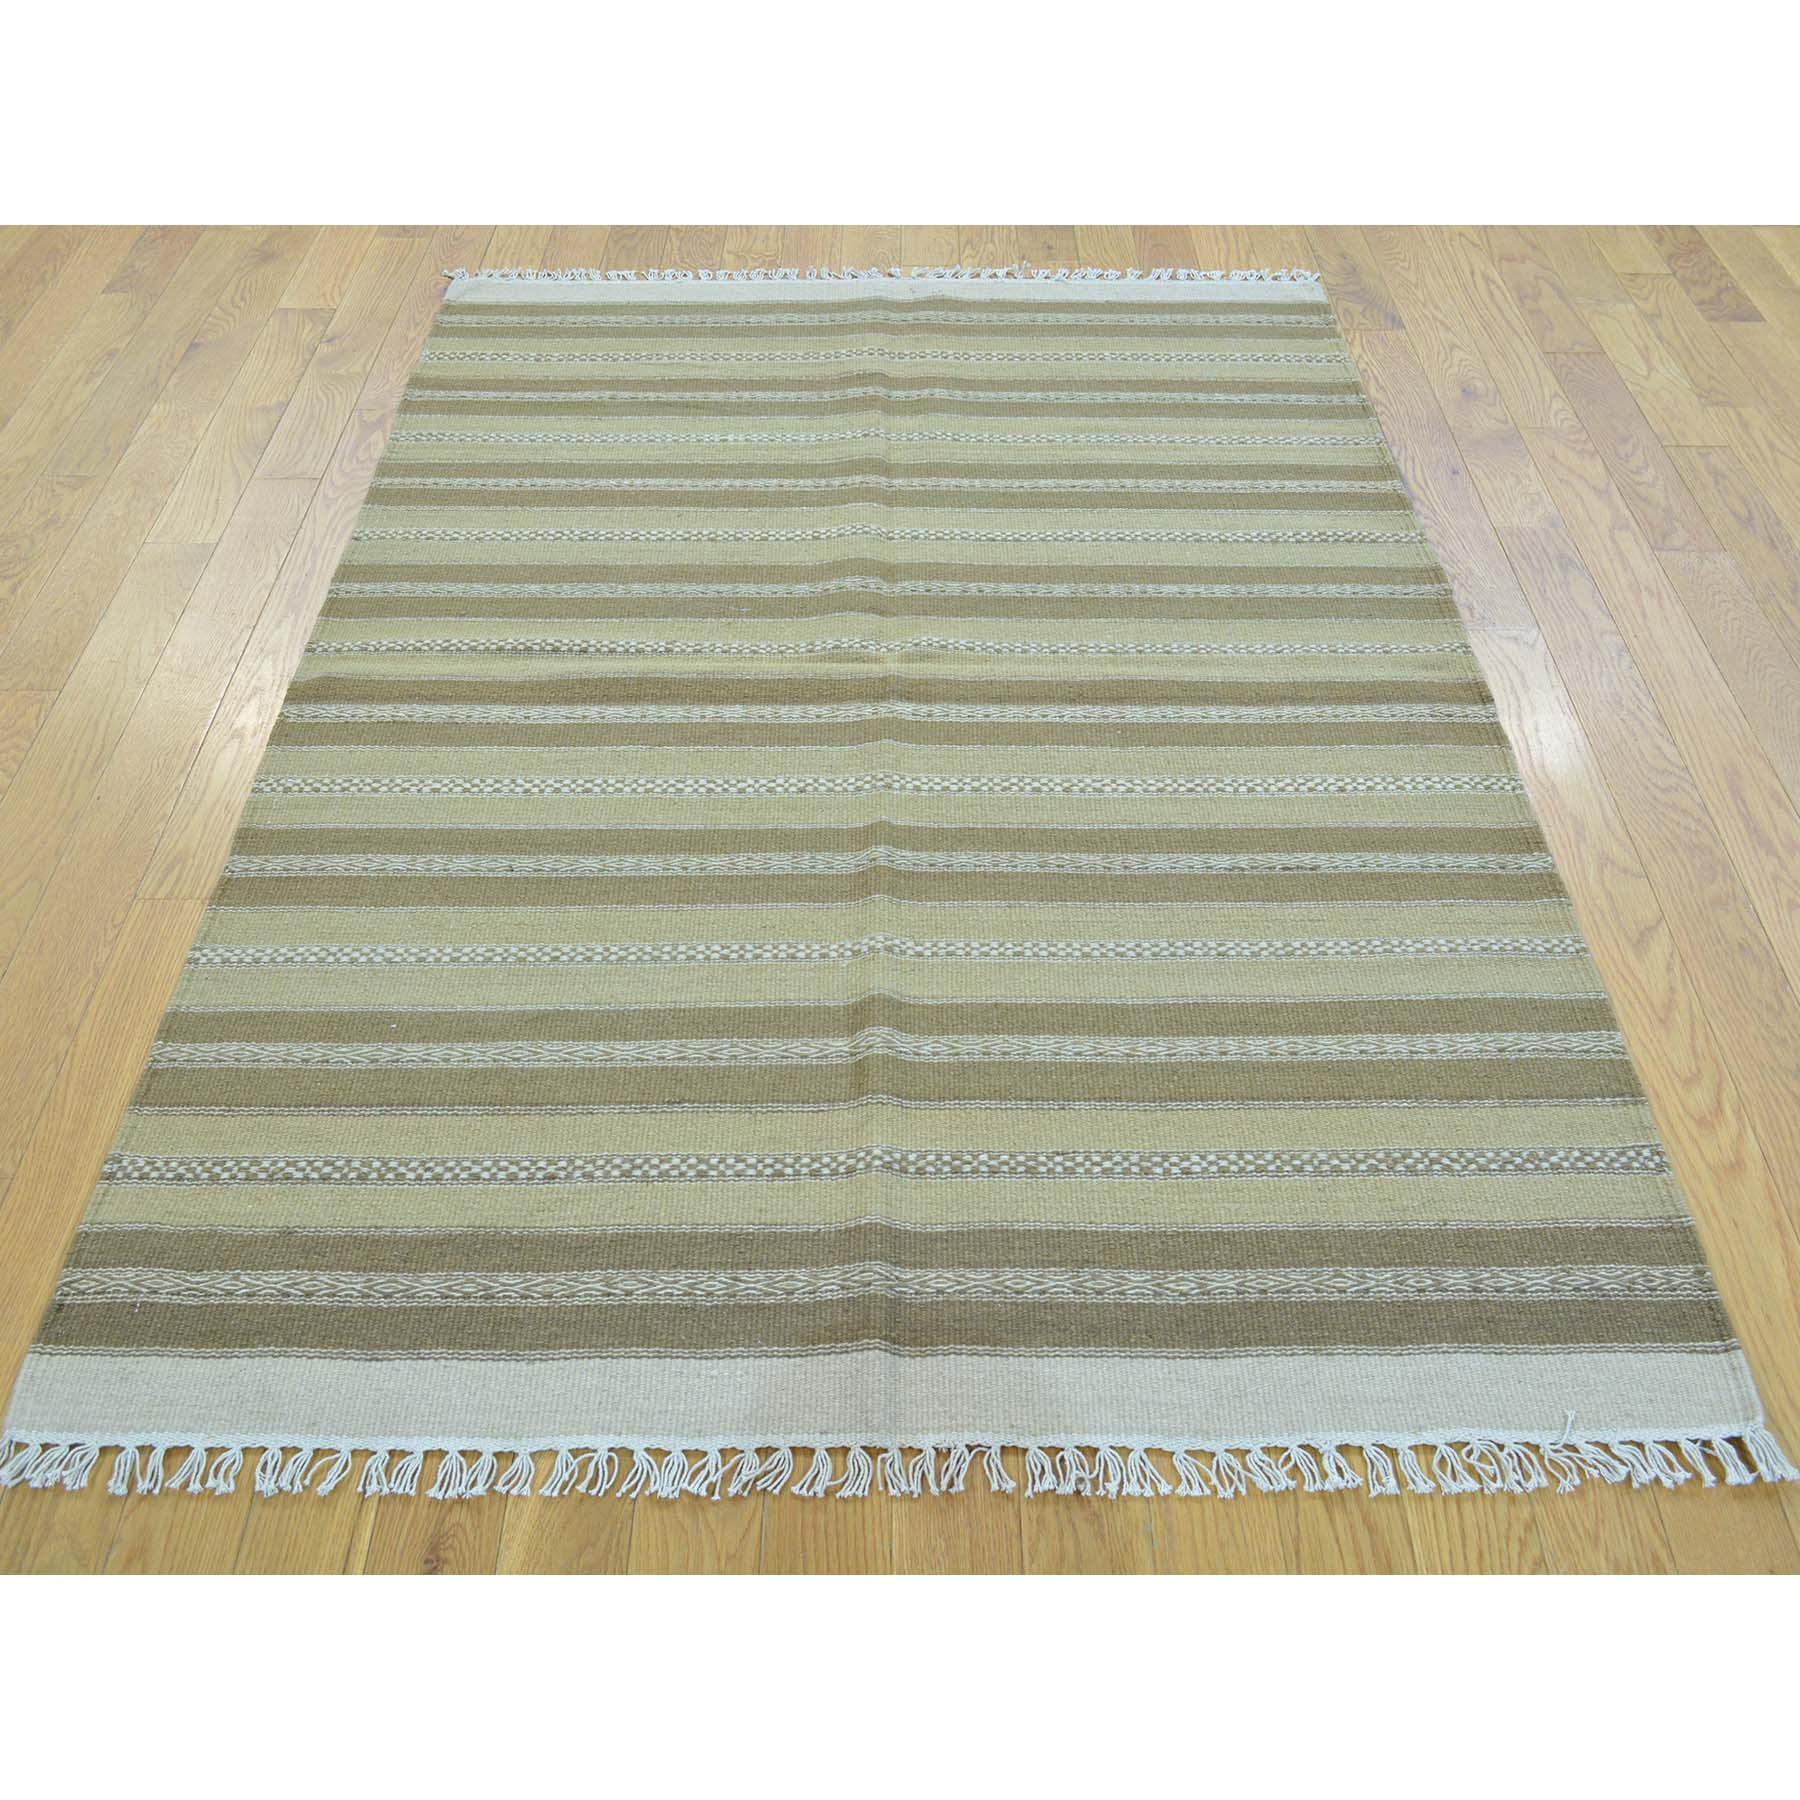 "Handmade Flat Weave Rectangle Rug > Design# SH30022 > Size: 3'-10"" x 6'-0"" [ONLINE ONLY]"